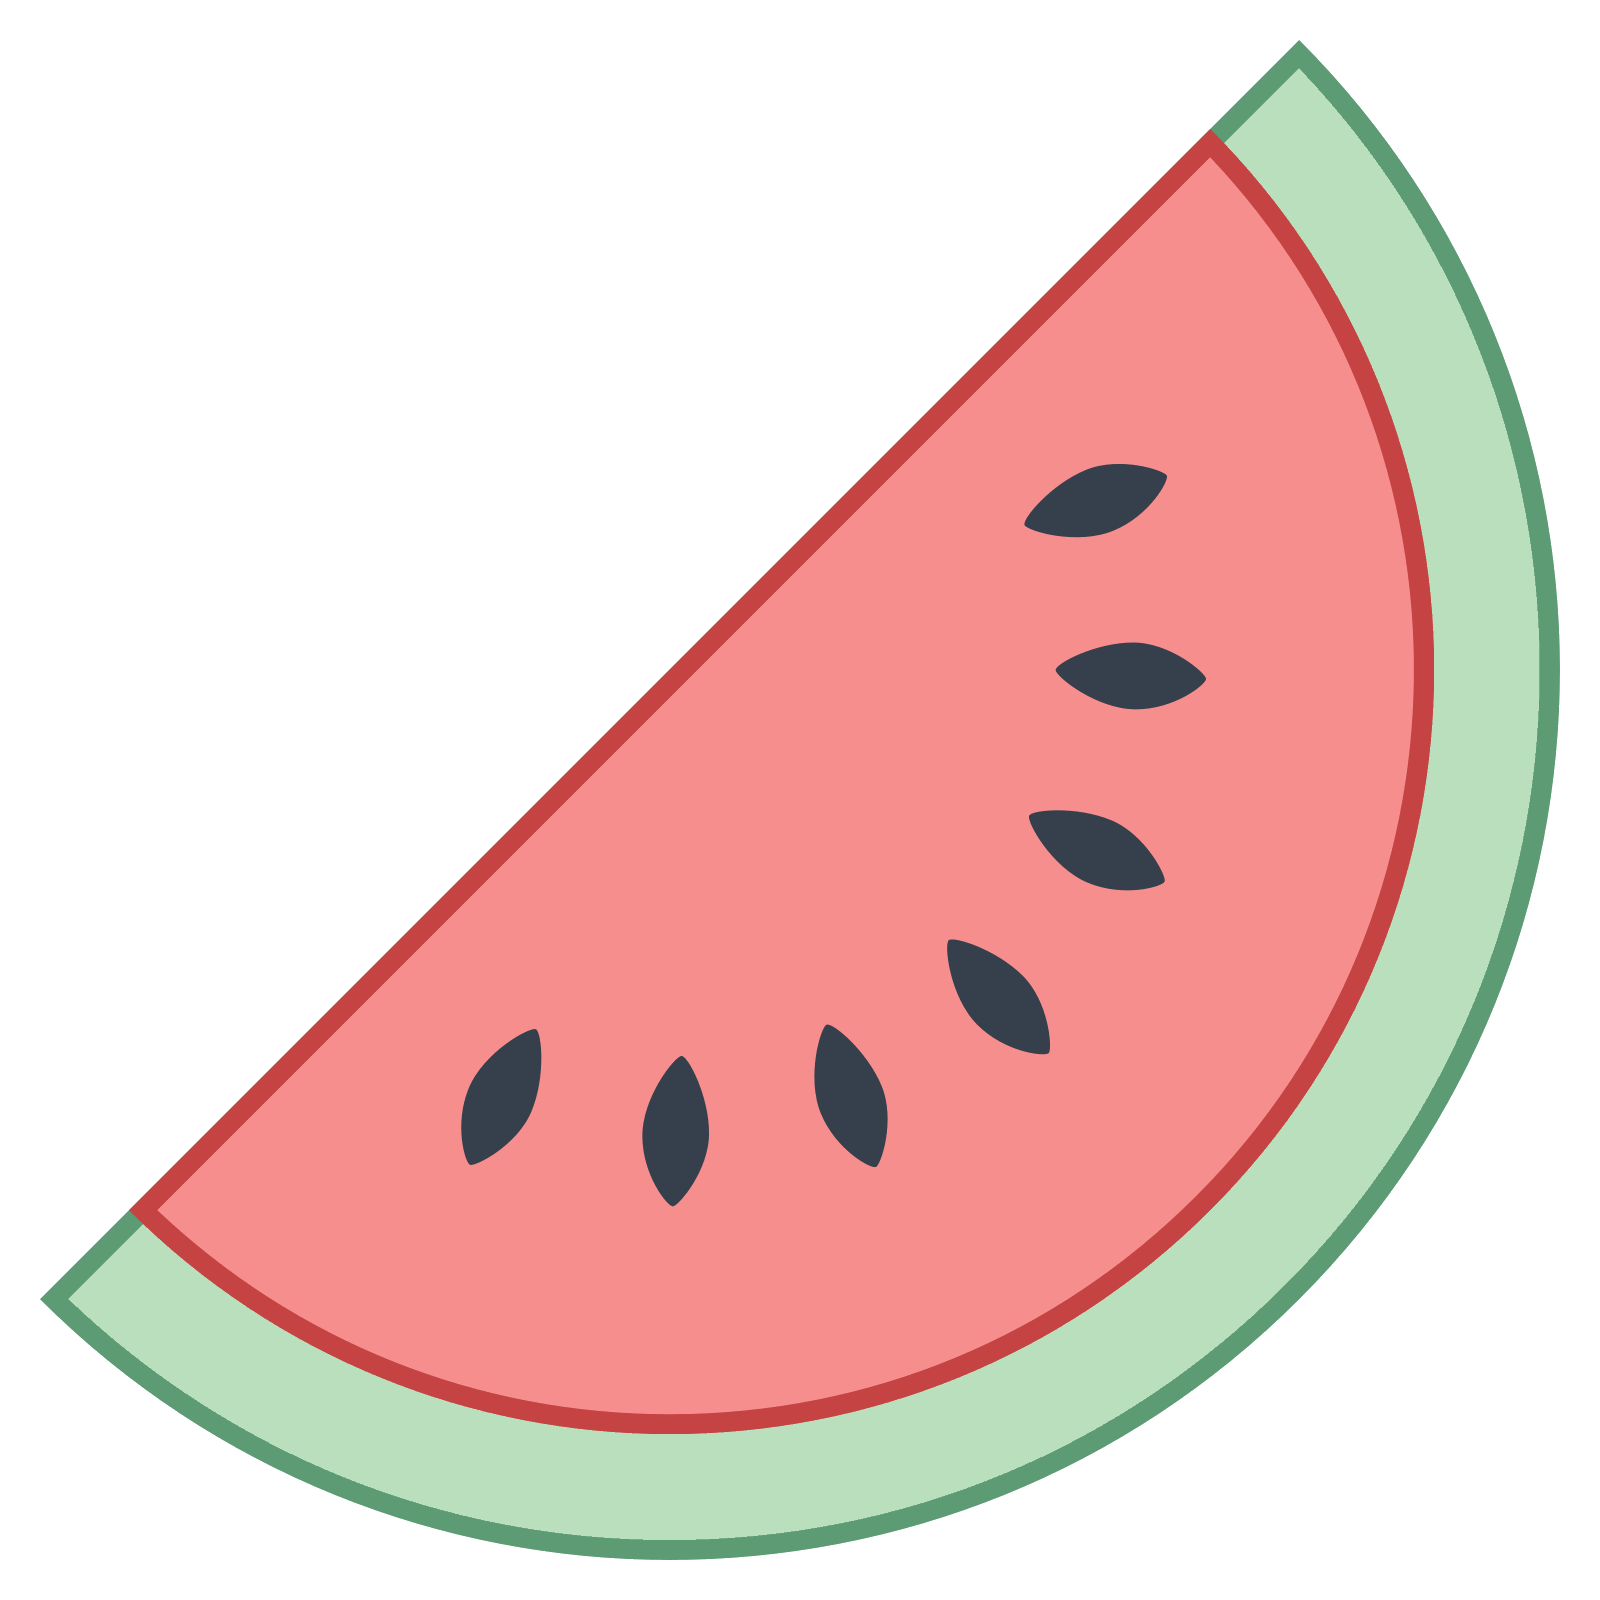 Watermelon seeds png. Icon there is half